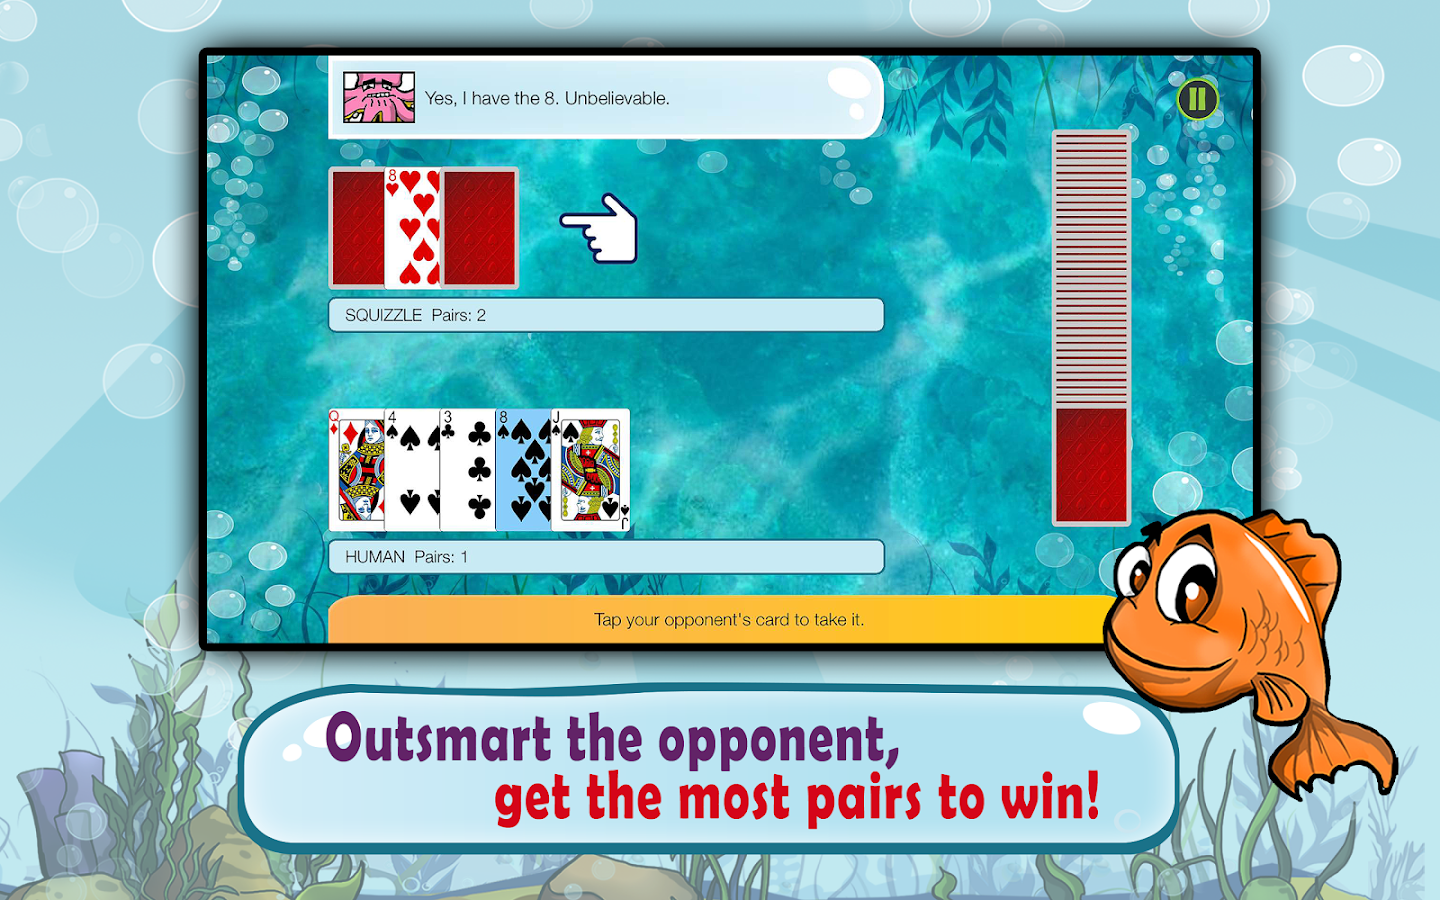 Go fish kids card game free android apps on google play for Go fish games